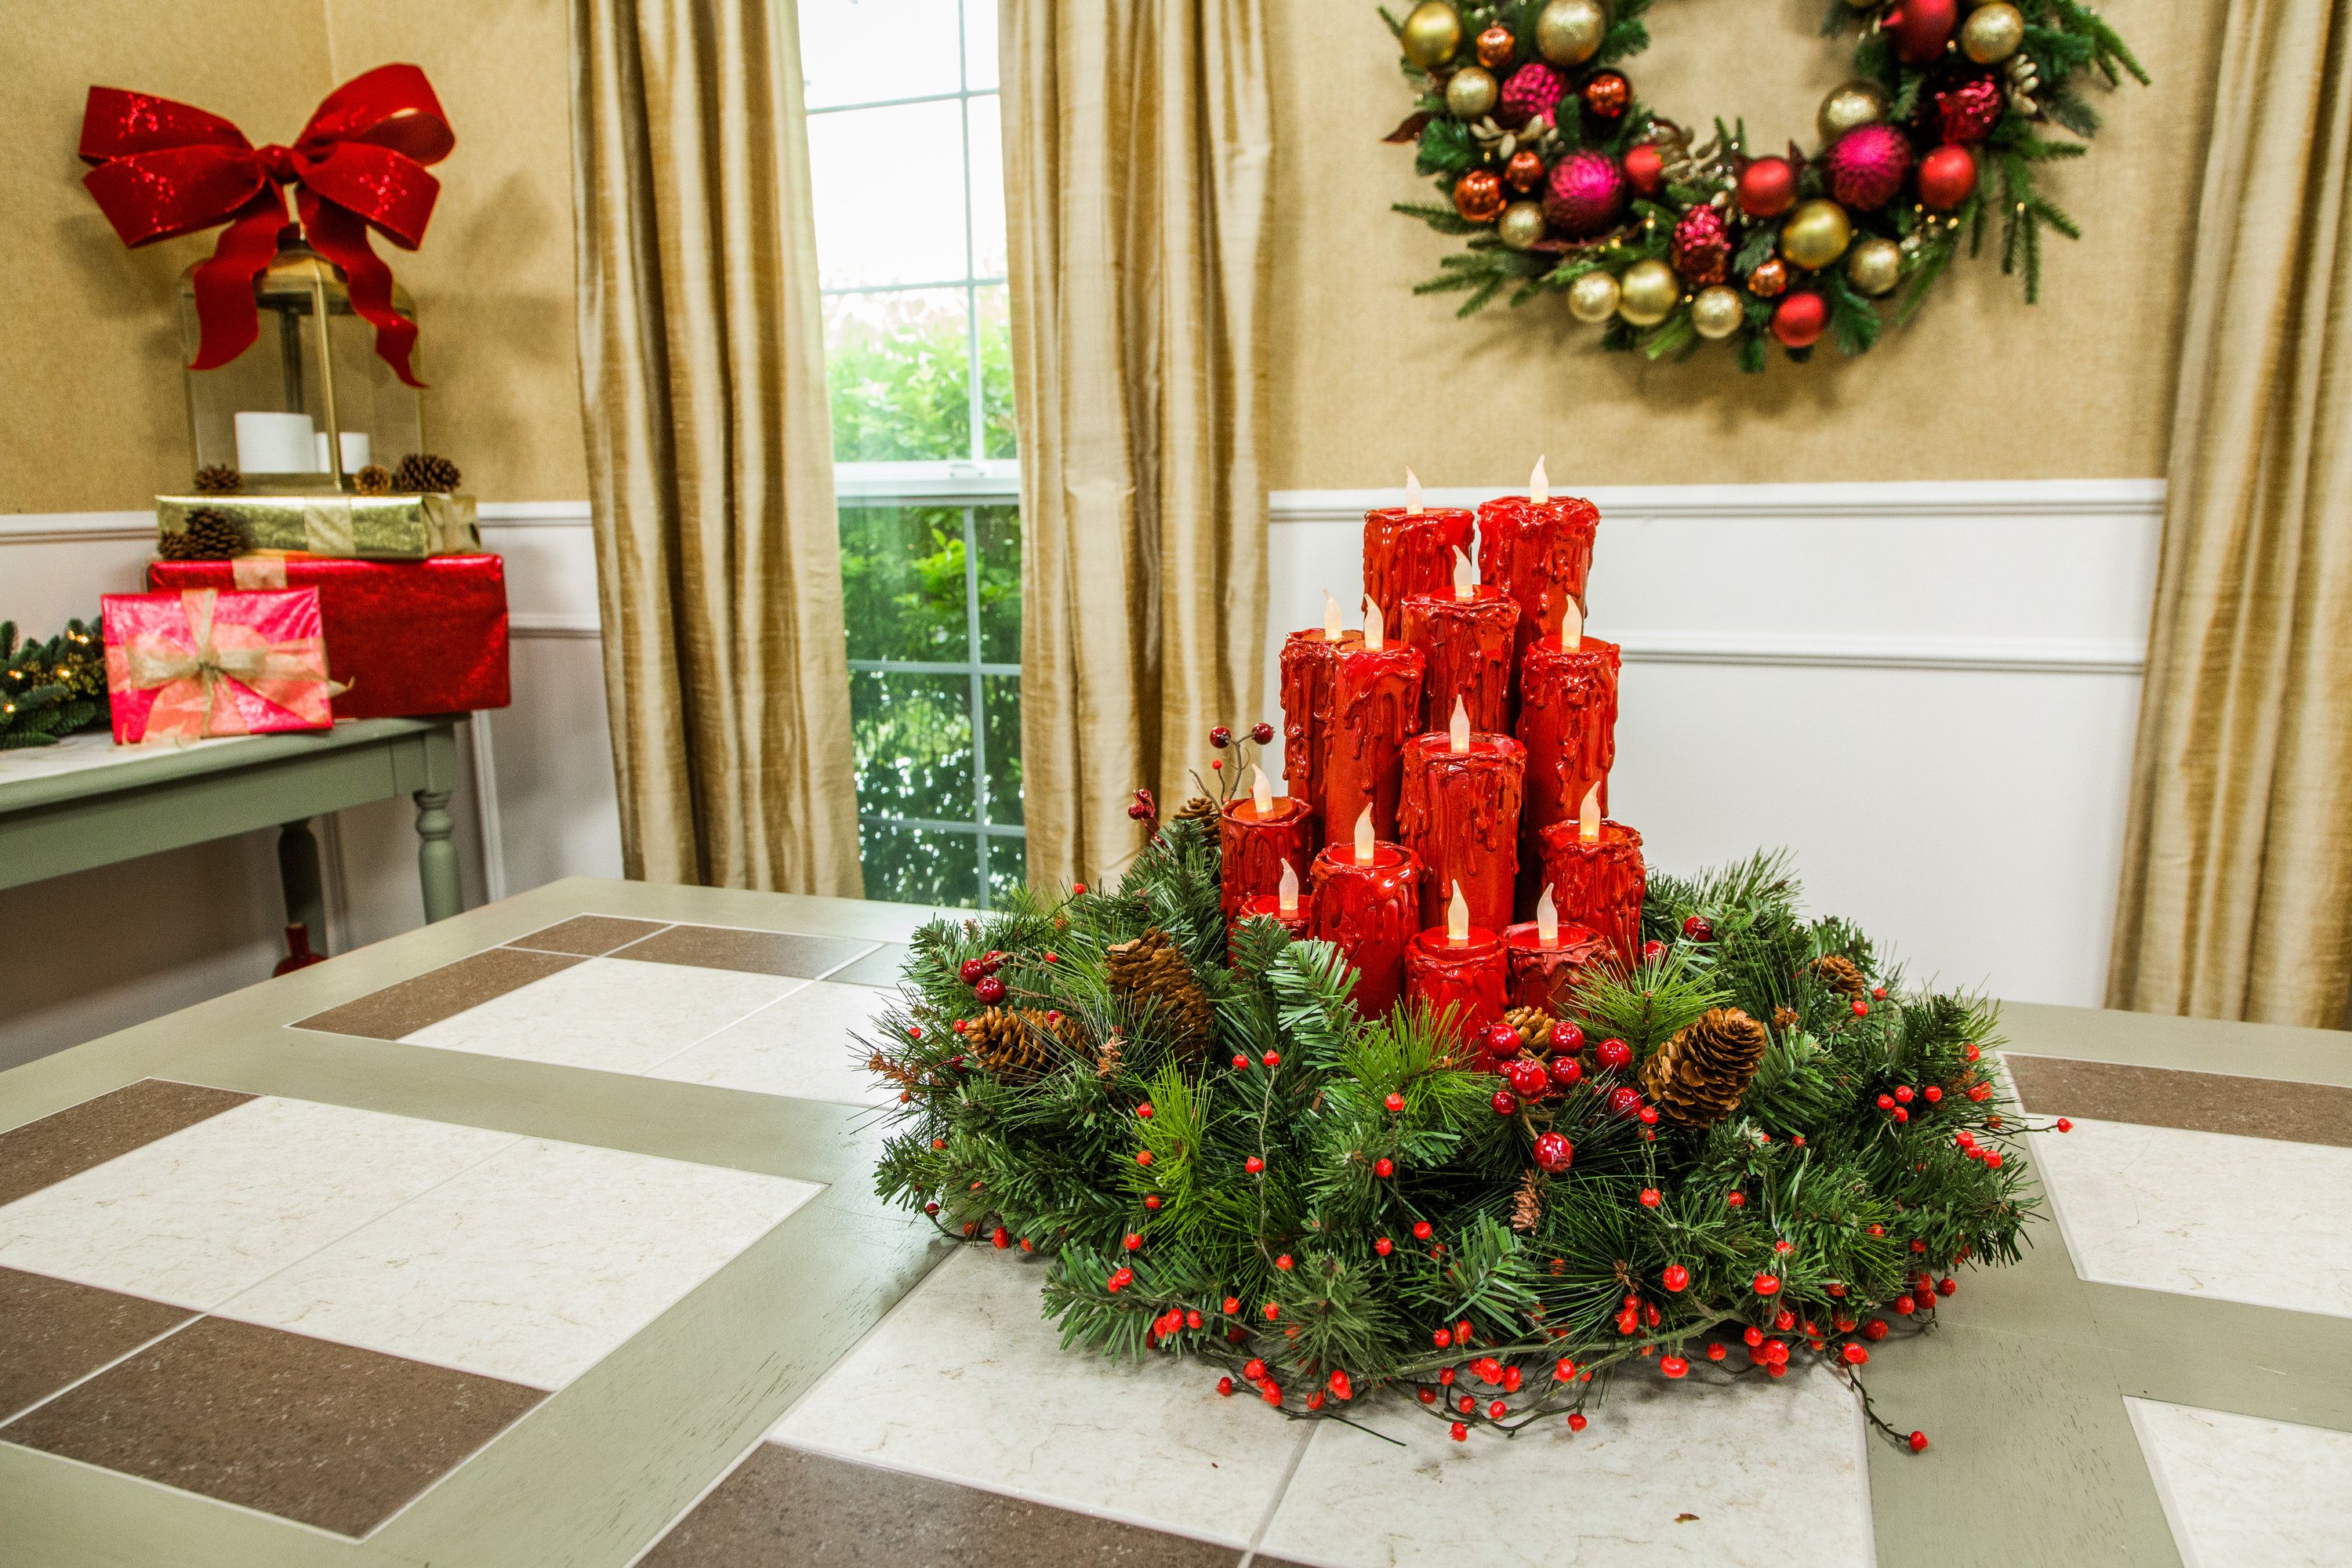 Festive Diy Christmas Candle Centerpiece Will Add Some Cheer To Any